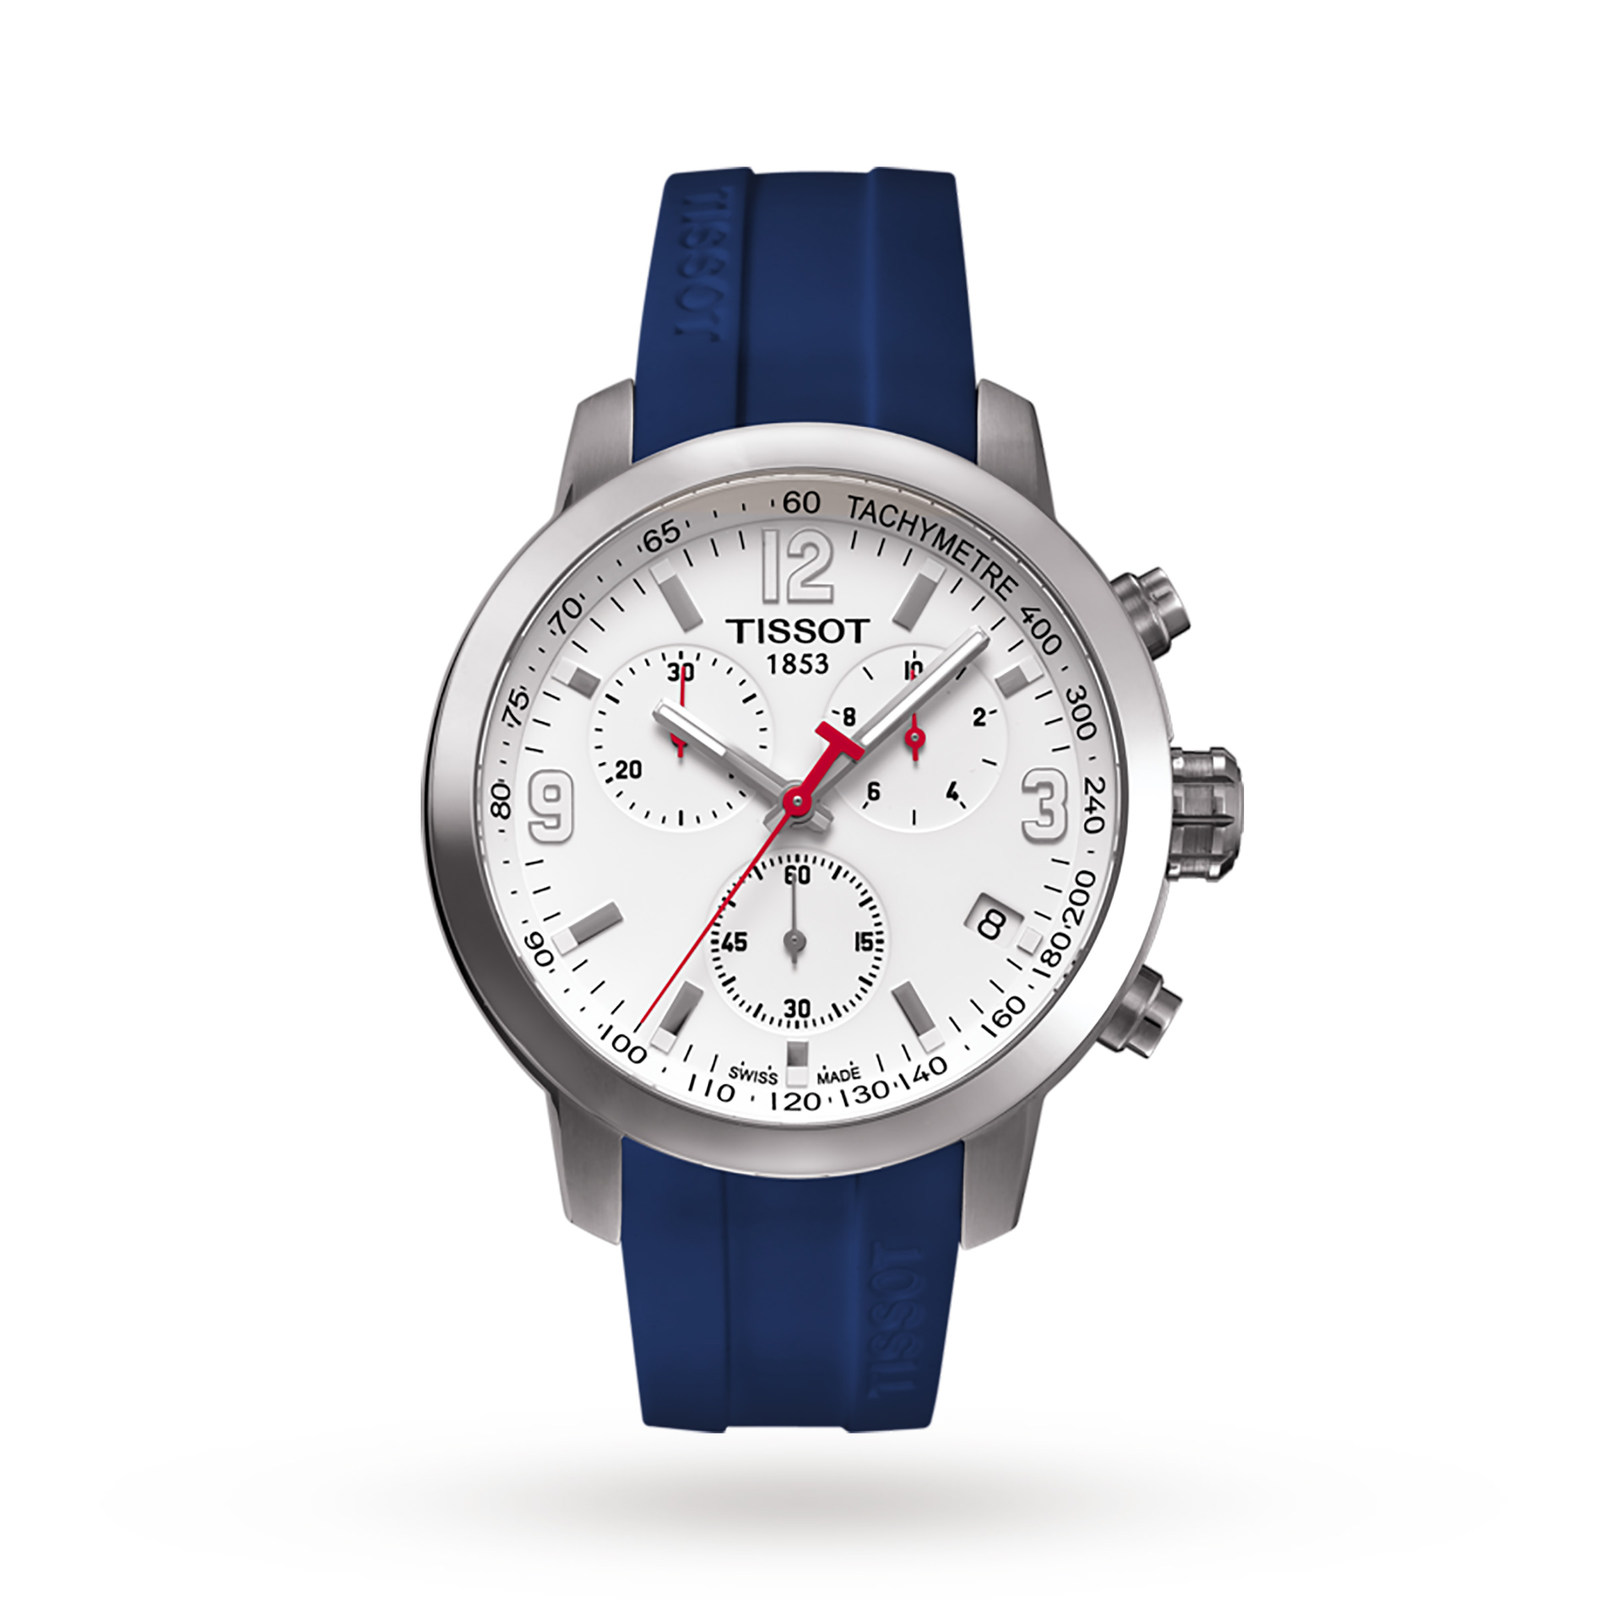 Tissot PRC 200 Chronograph Six Nations Watch